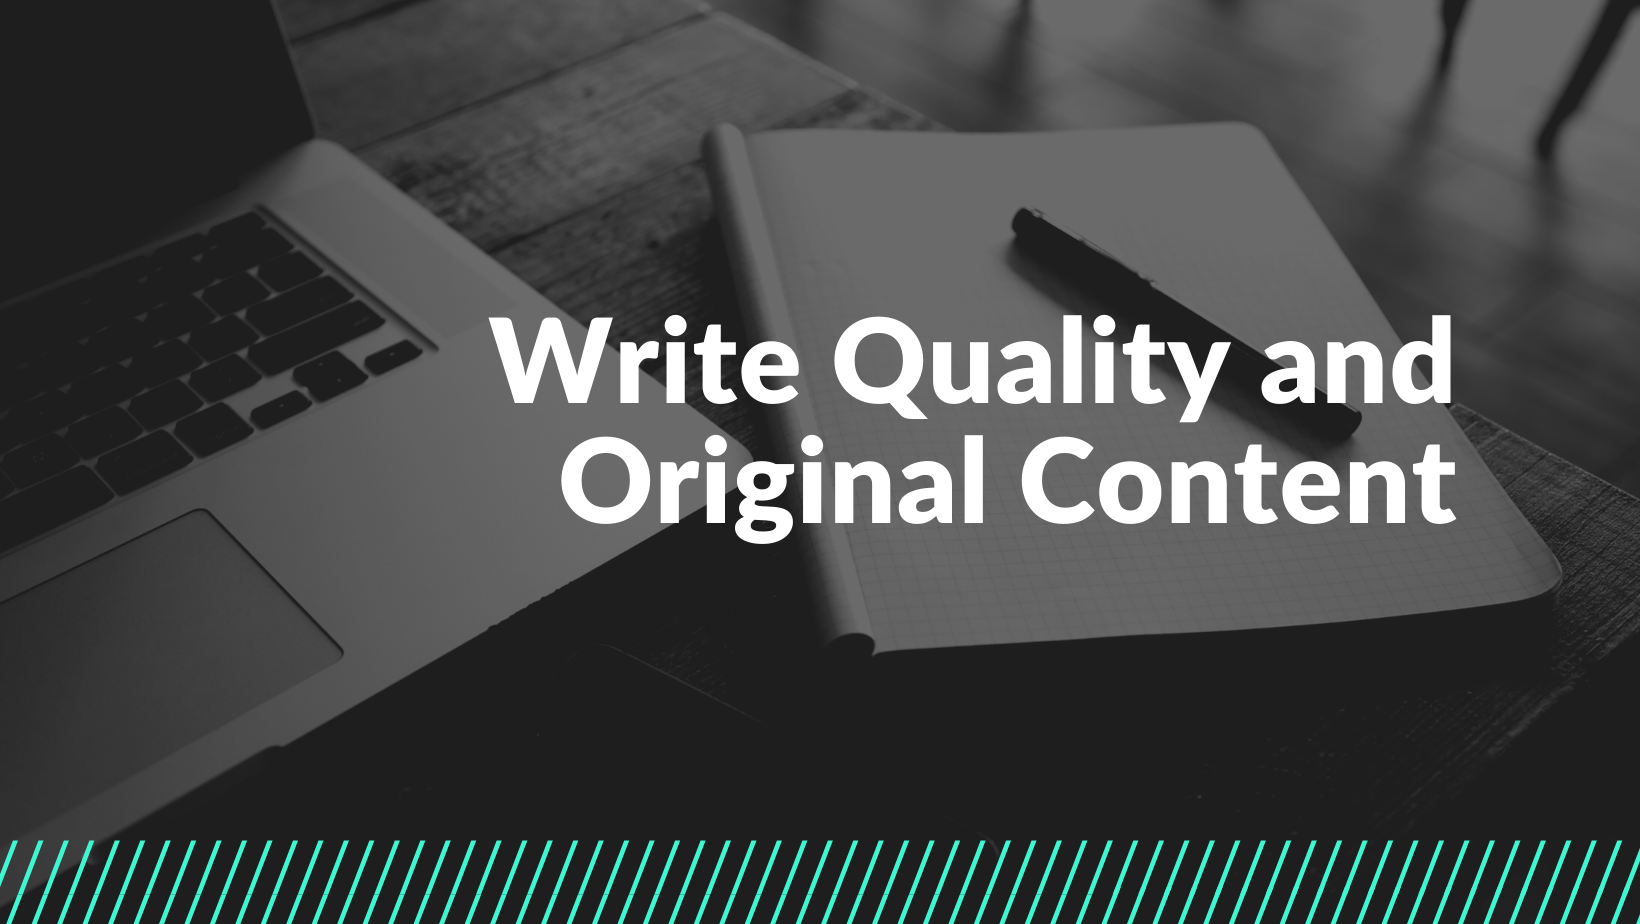 Write Quality and Original Content